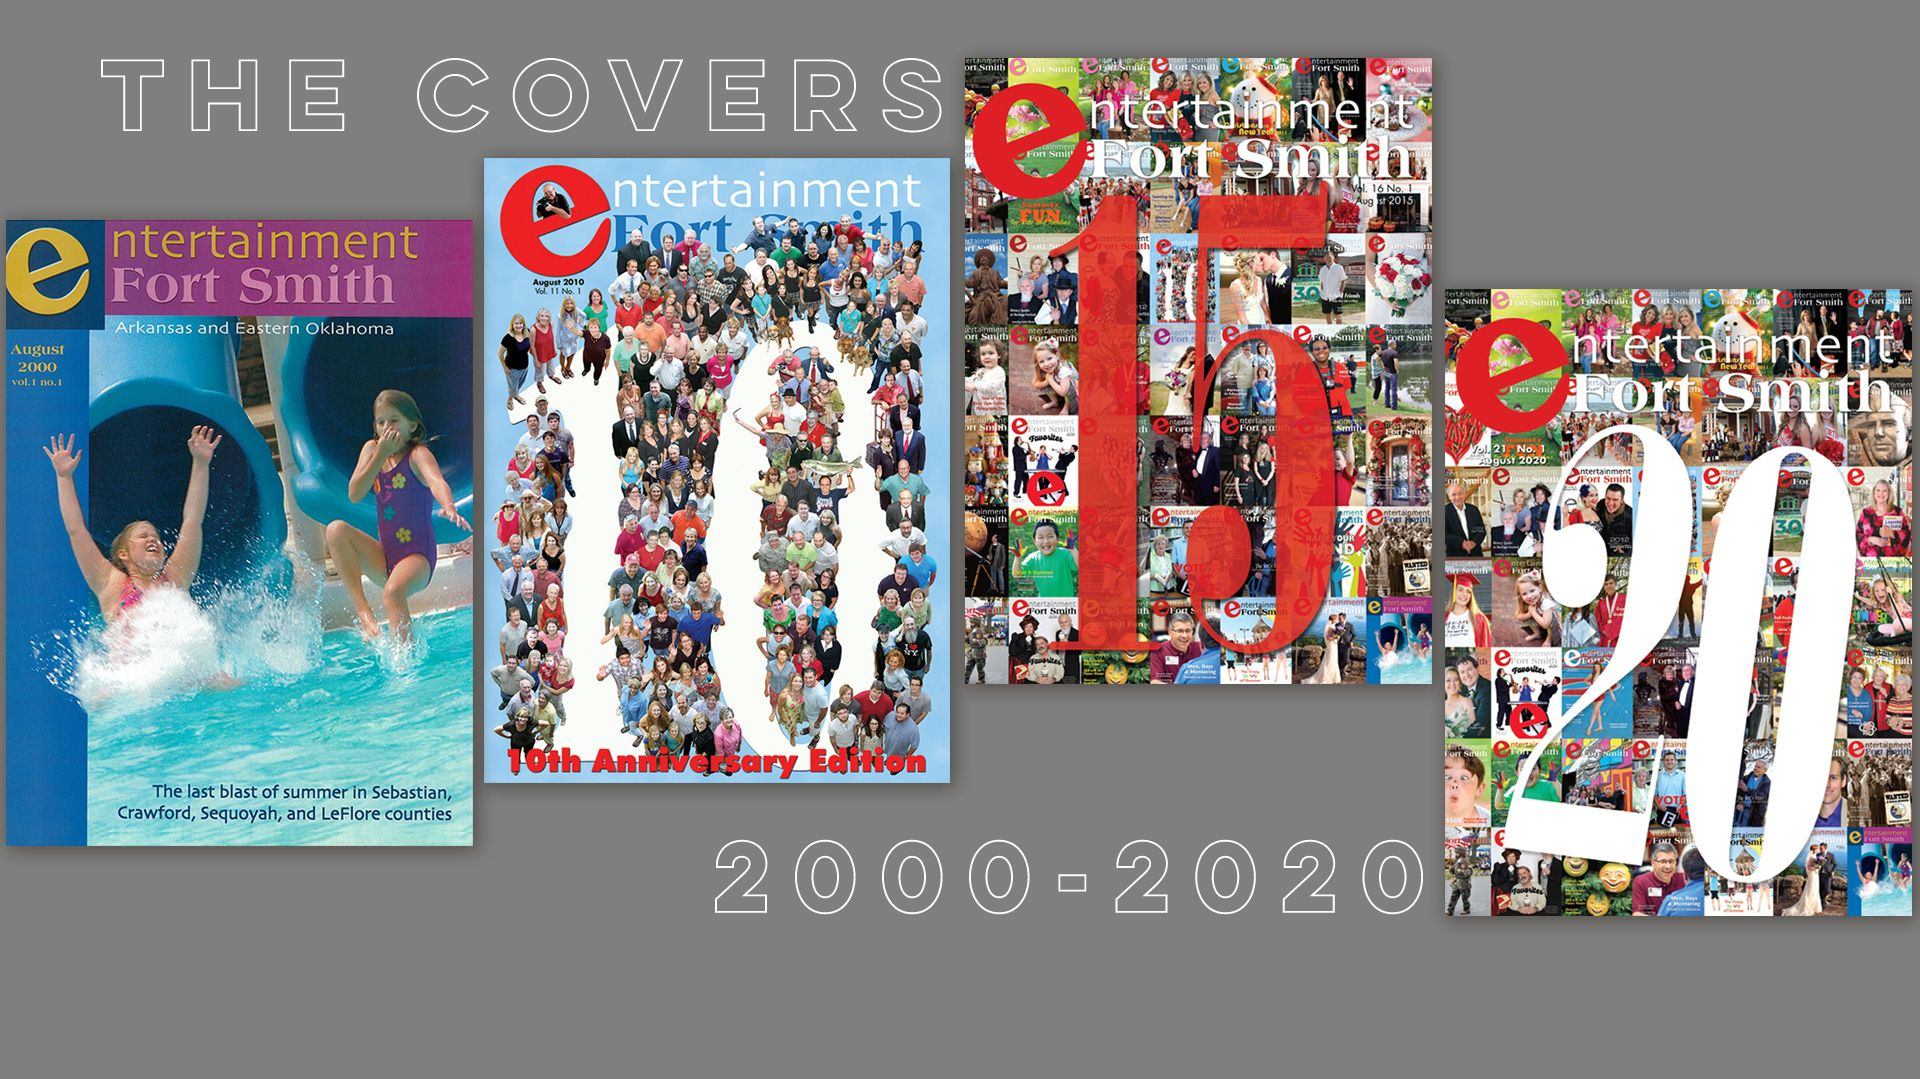 20 years of eFortSmith covers